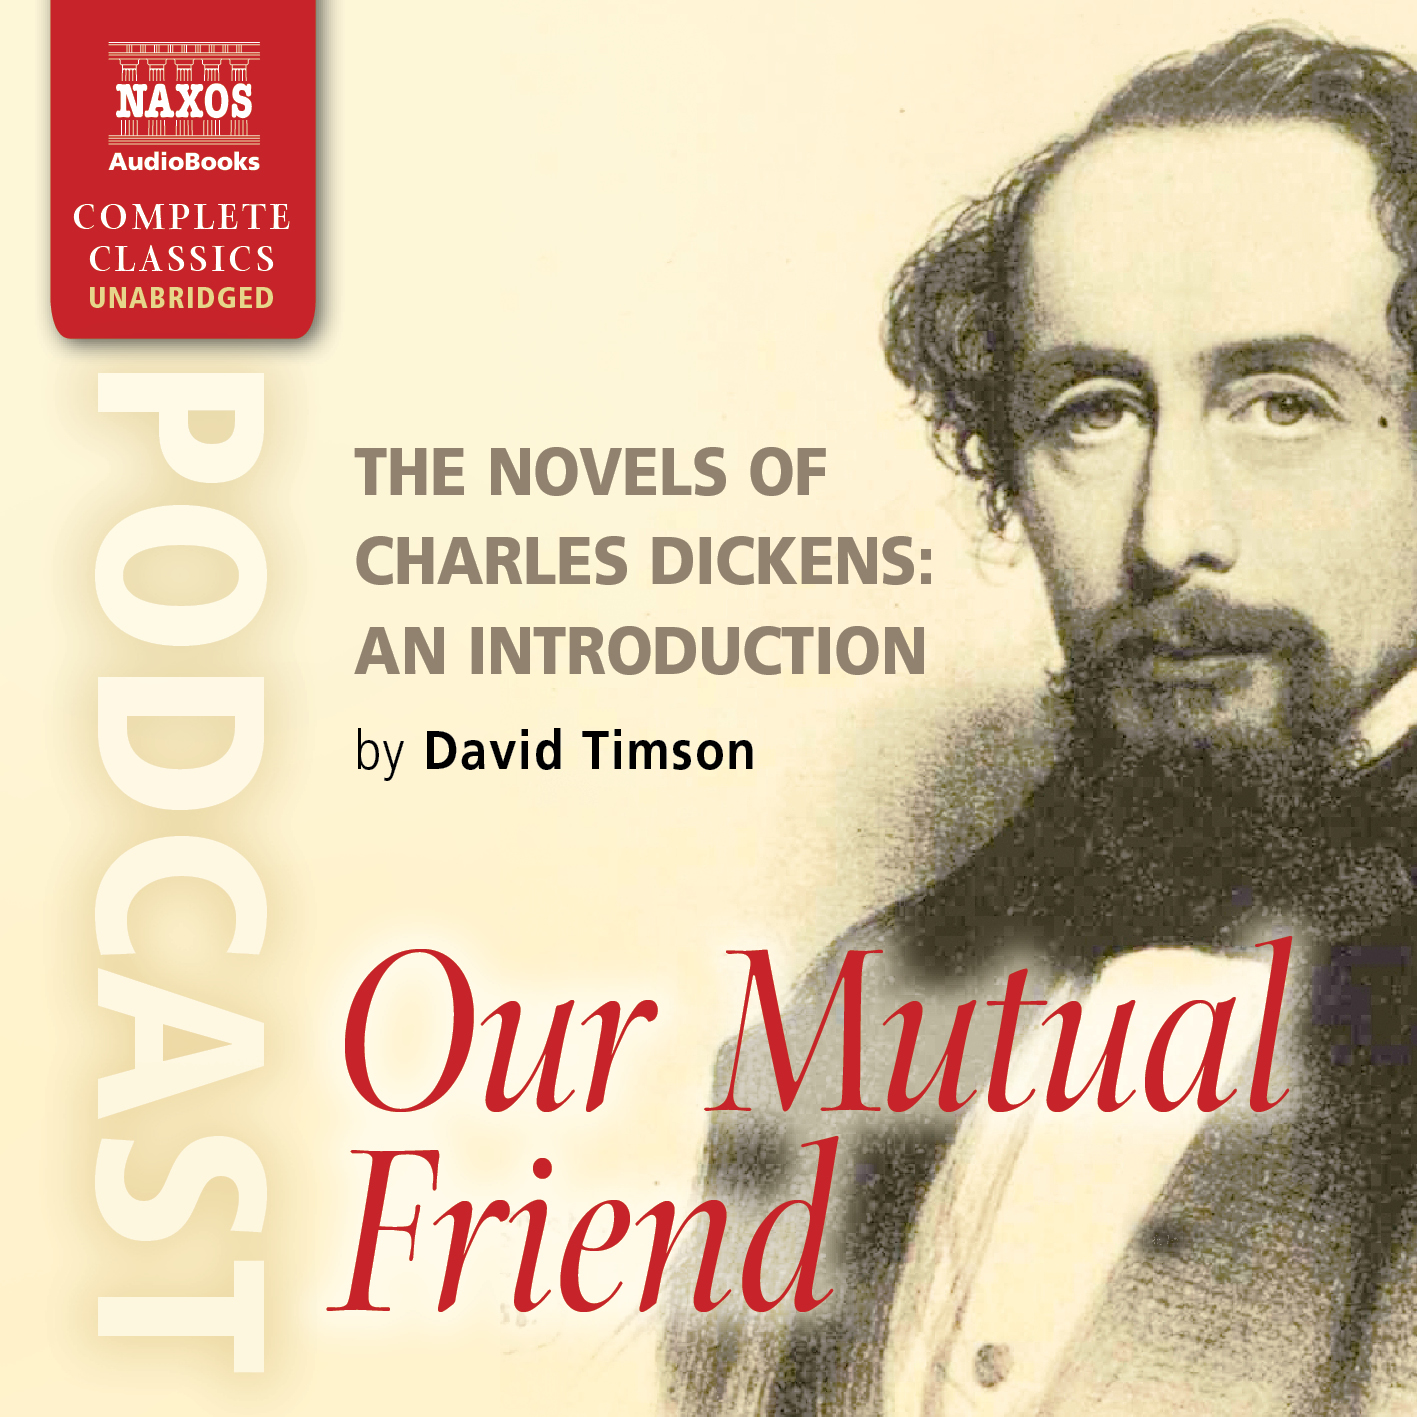 https://naxosaudiobooks.com/wp-content/uploads/2019/08/NA0395_Our_Mutual_Friend_Podcast.jpg